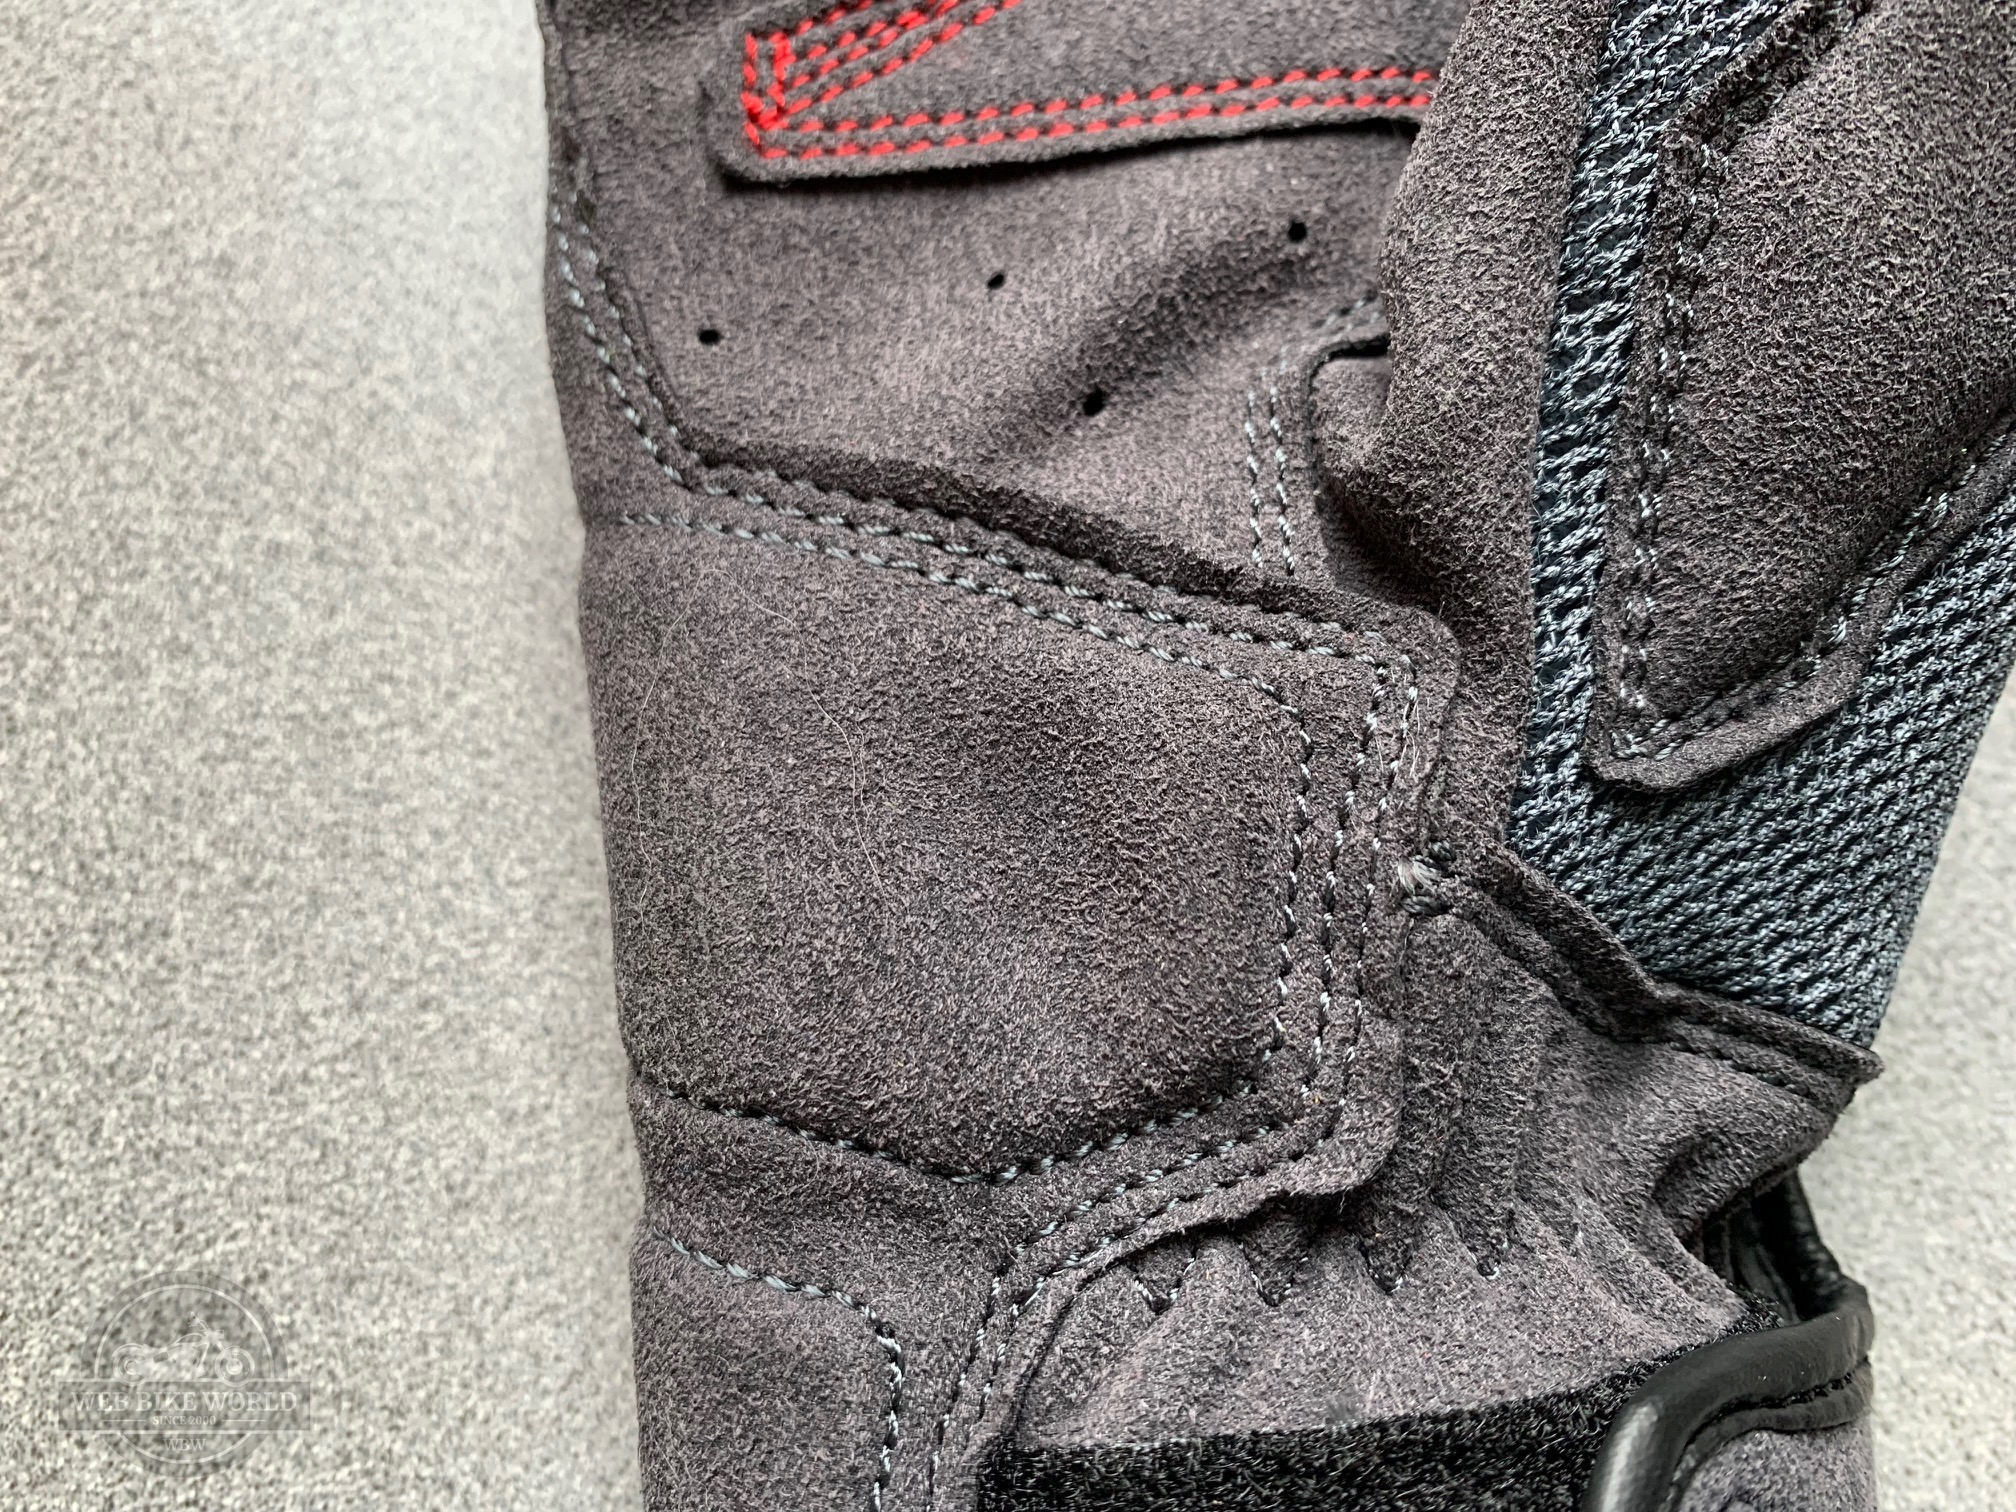 A view of the extra layer of suede on the REV'IT! Volcano gloves